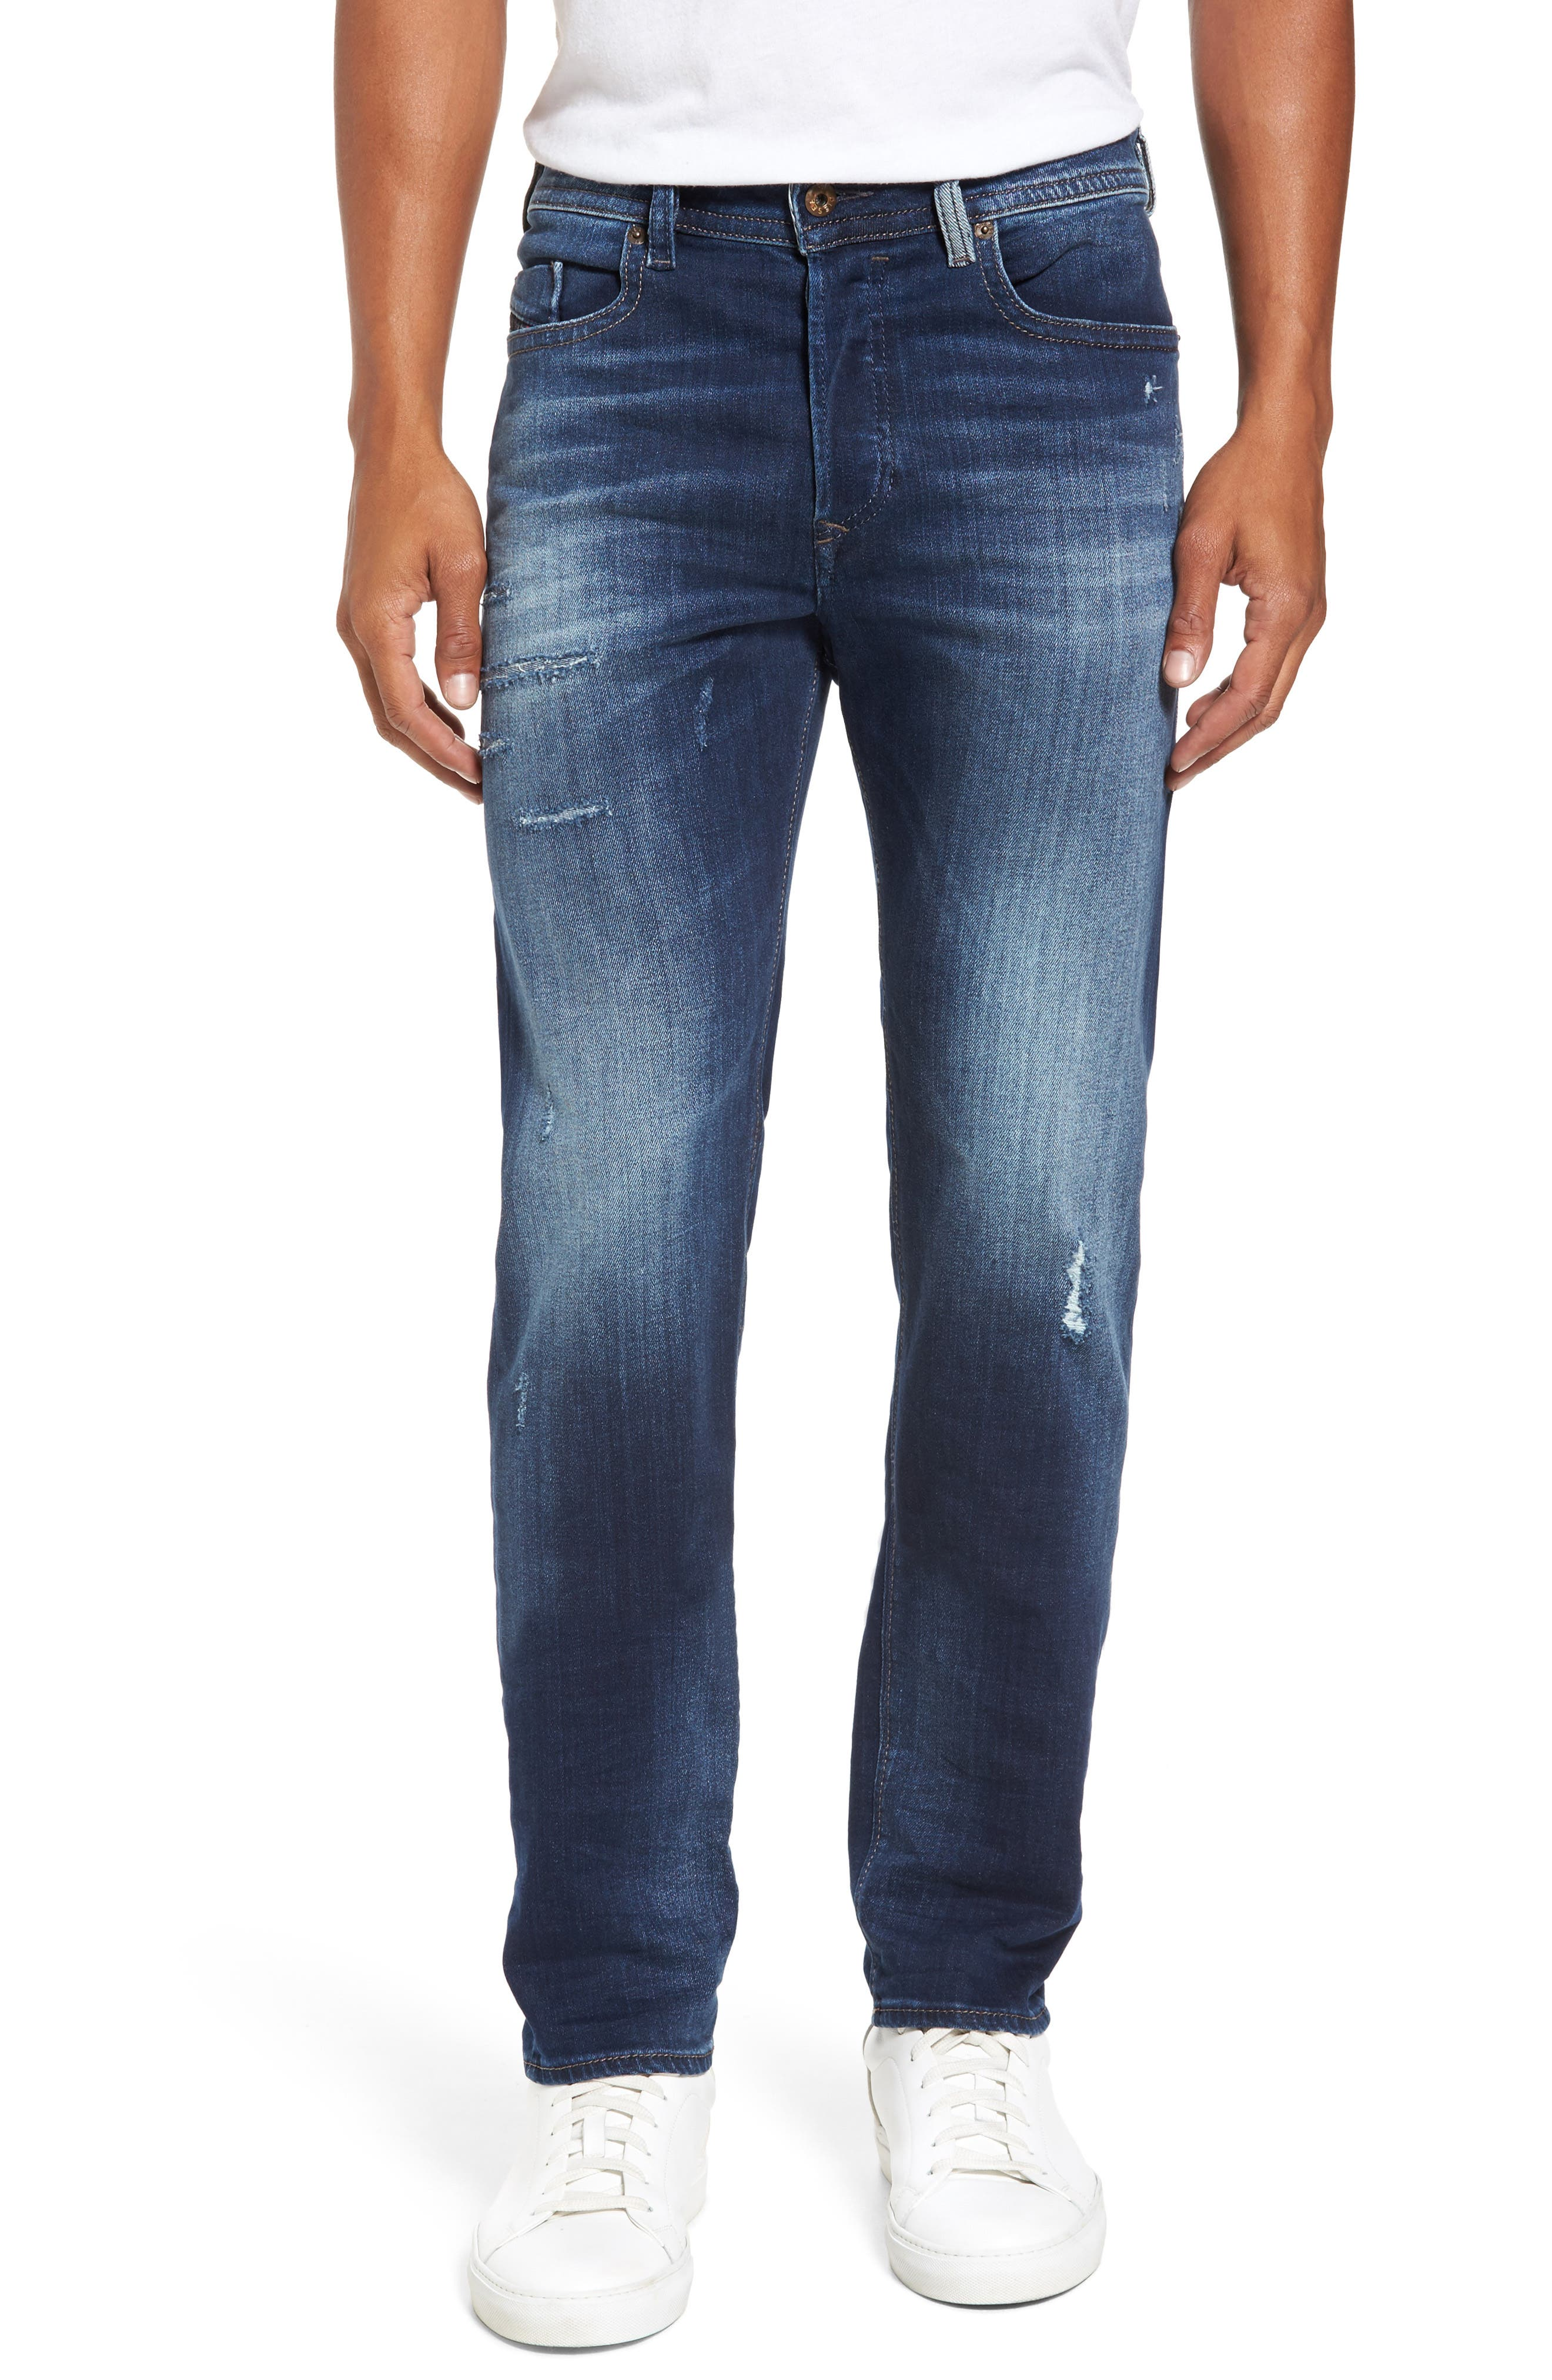 Buster Slim Straight Leg Jeans,                         Main,                         color, 900